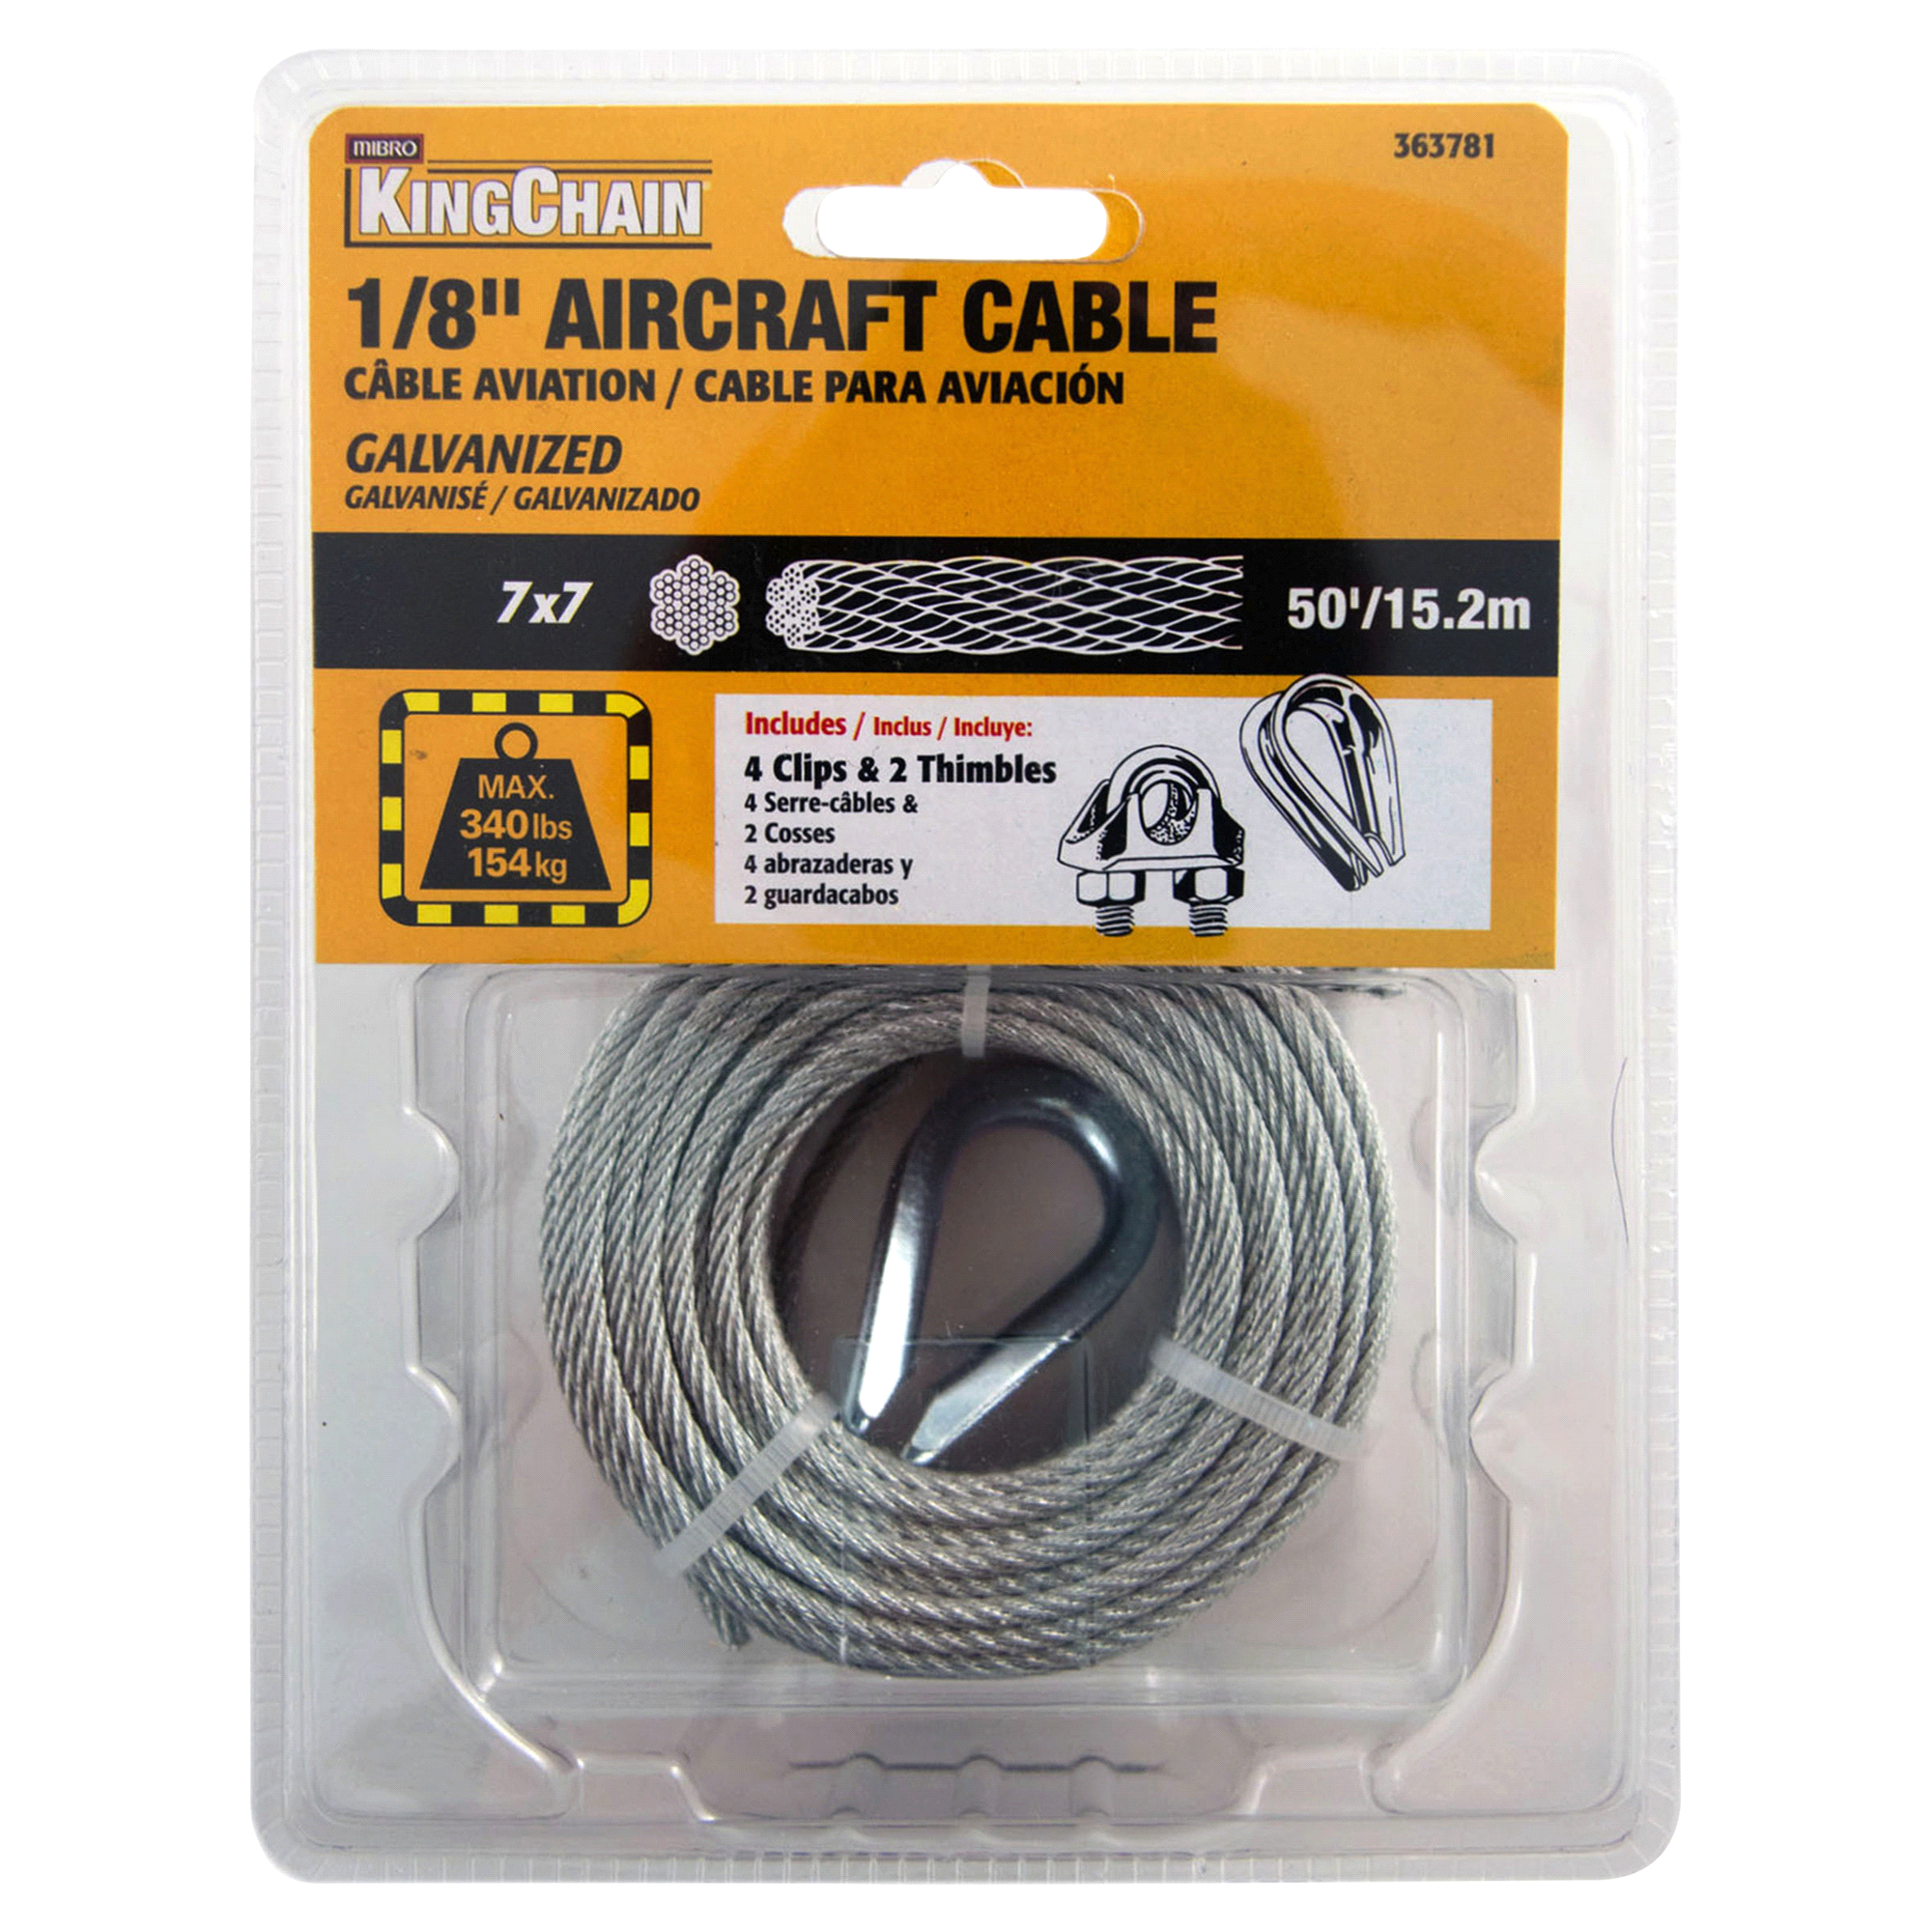 KingChain 1/8 x 50 7x7 Galvanized Aircraft Cable - Grab N Go Pack ...